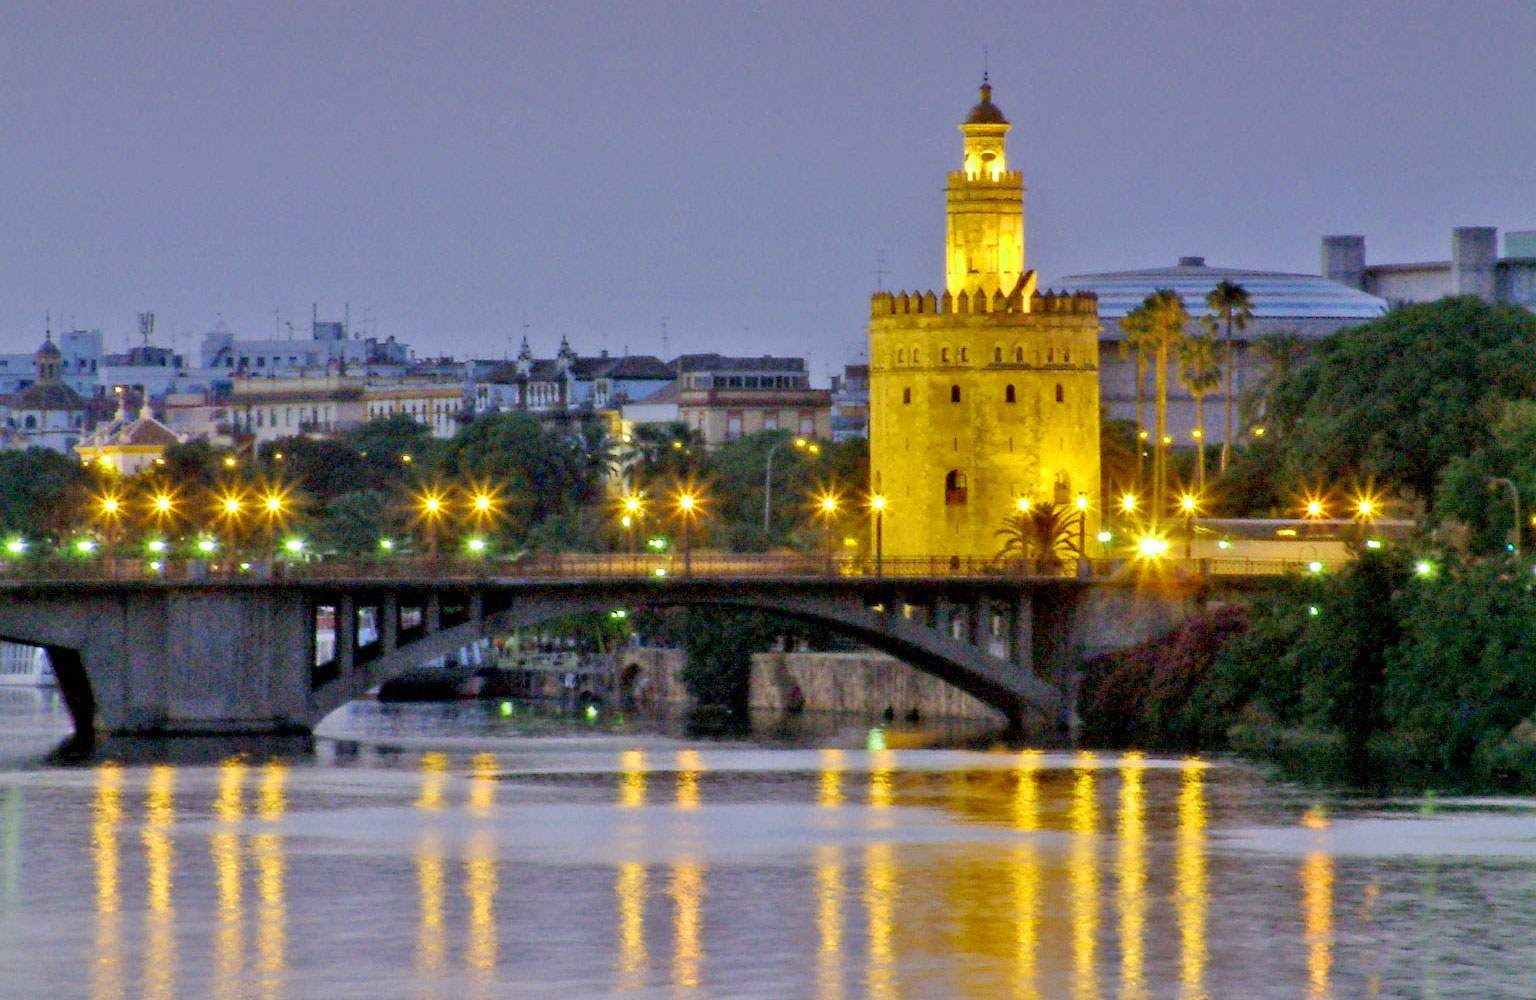 Sevilla Image: Andalusia, A Melting Pot Of Cultures And Cuisines